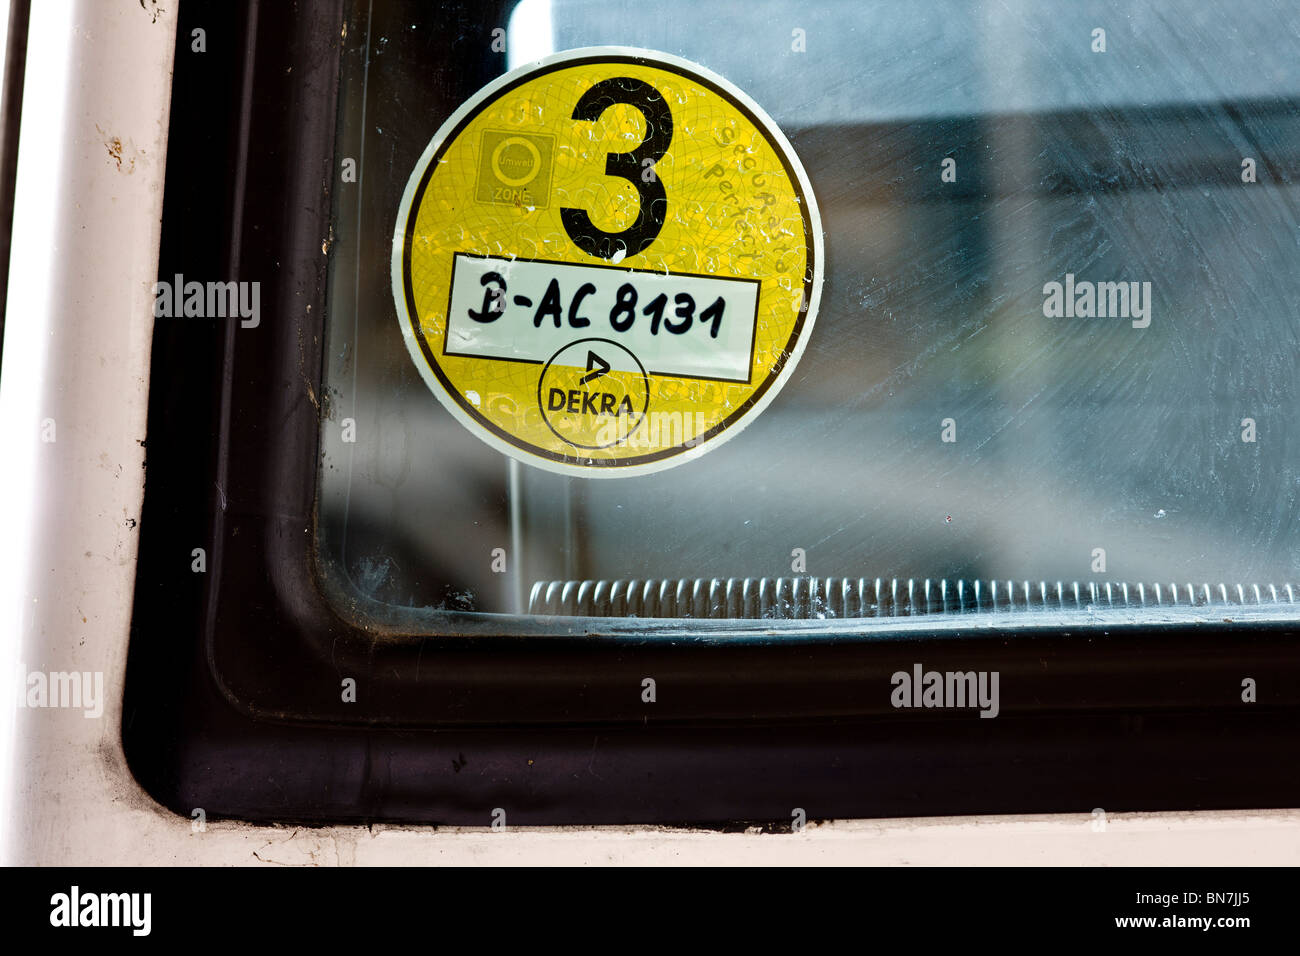 Berlin environmental zone sticker on the windshield of an off-roader. - Stock Image